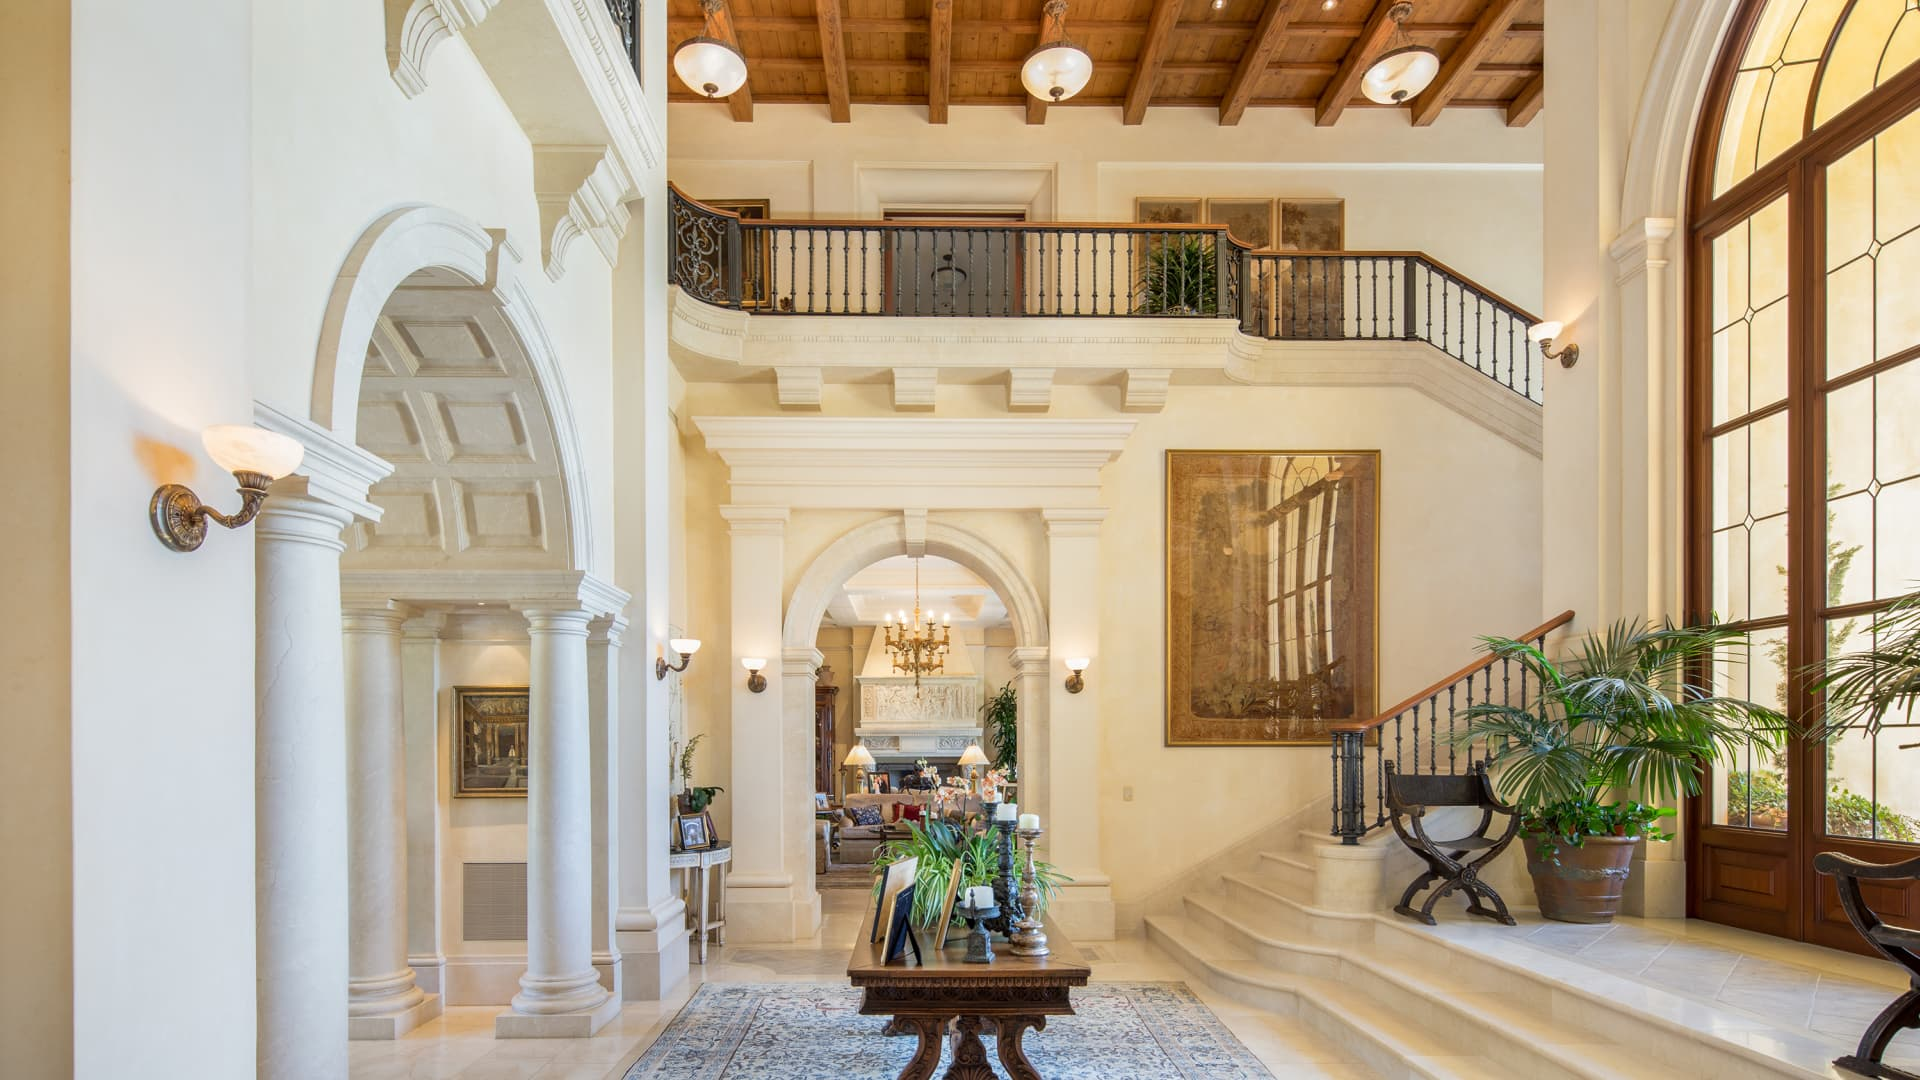 With vaulted ceilings and marble arches, Villa Firenze is reminiscent of an Italian villa.